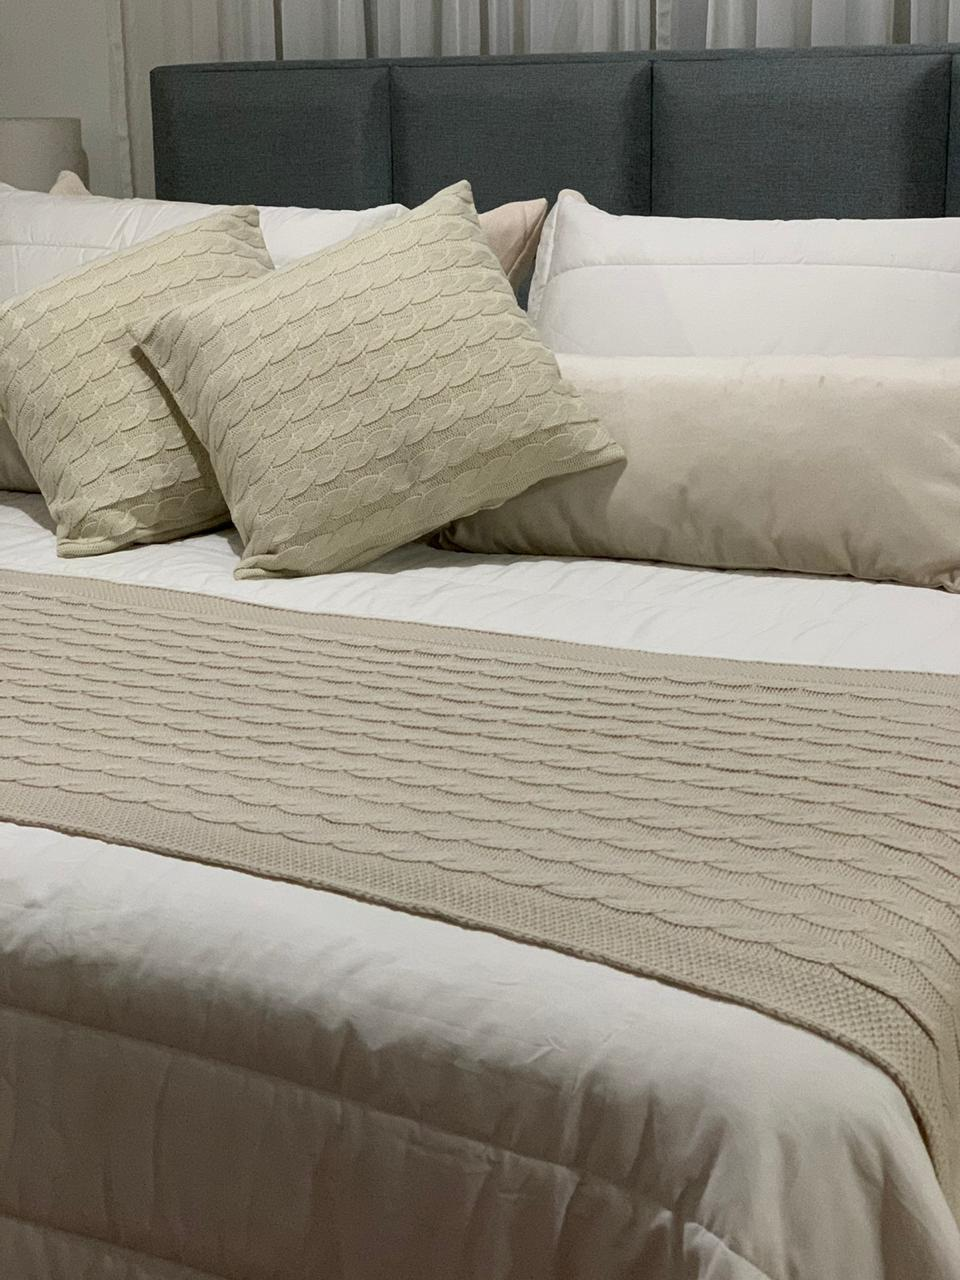 Peseira Tricot Clássica bege king 2,60x60 Paloma Home